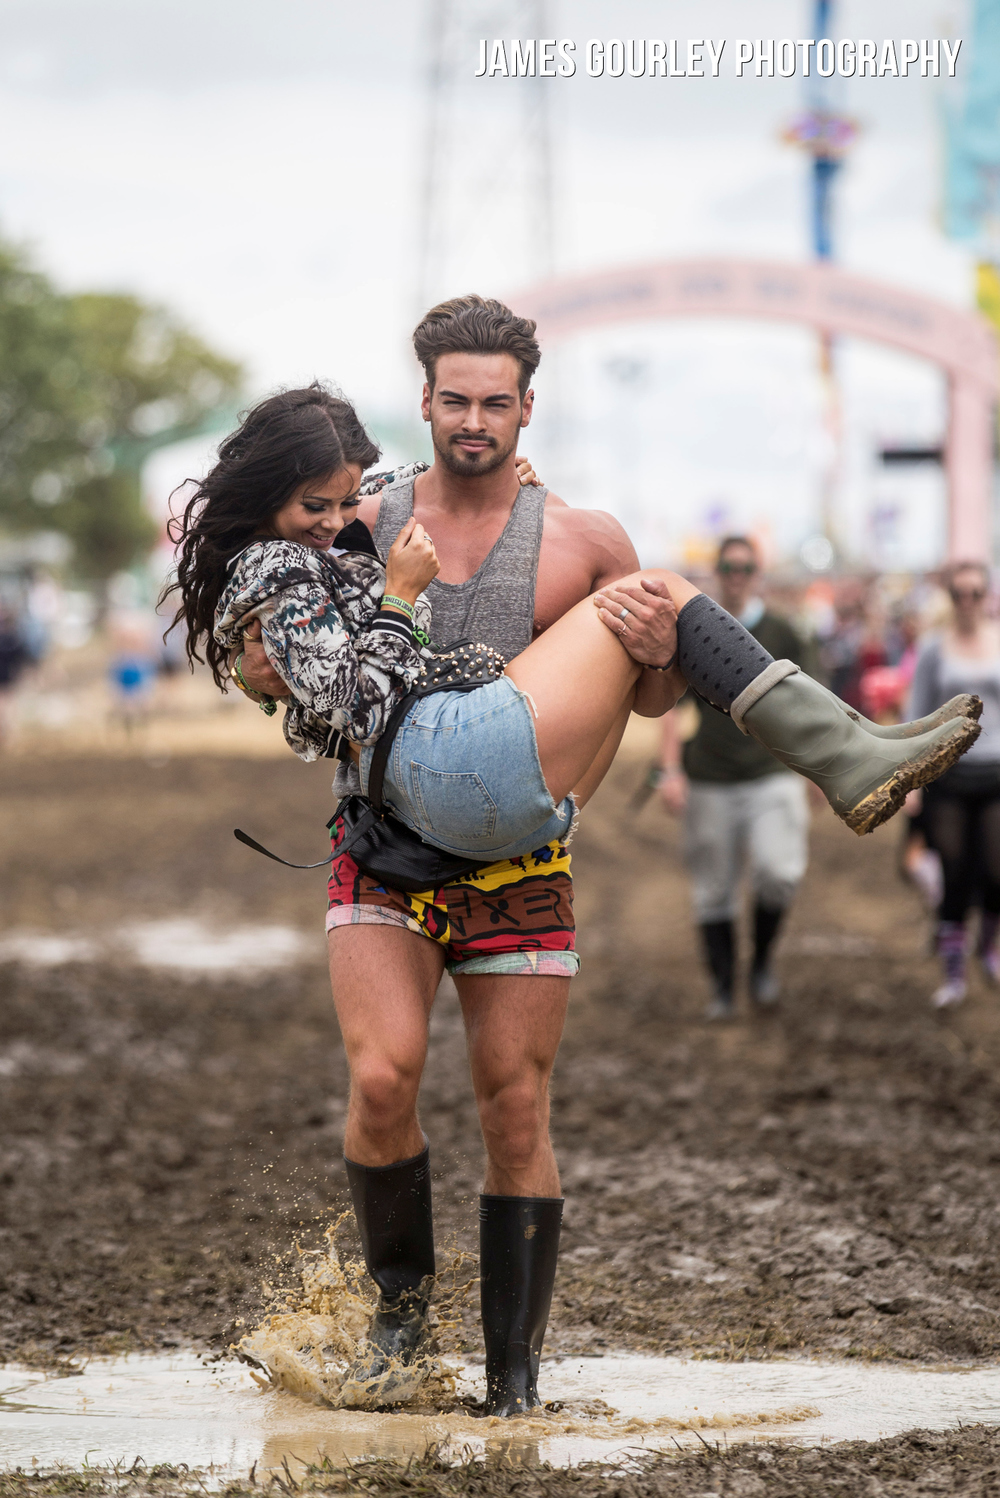 Phillip Sharp carries his girlfriend Becky Collins across muddy ground after heavy rain at the Isle of Wight Festival 2015